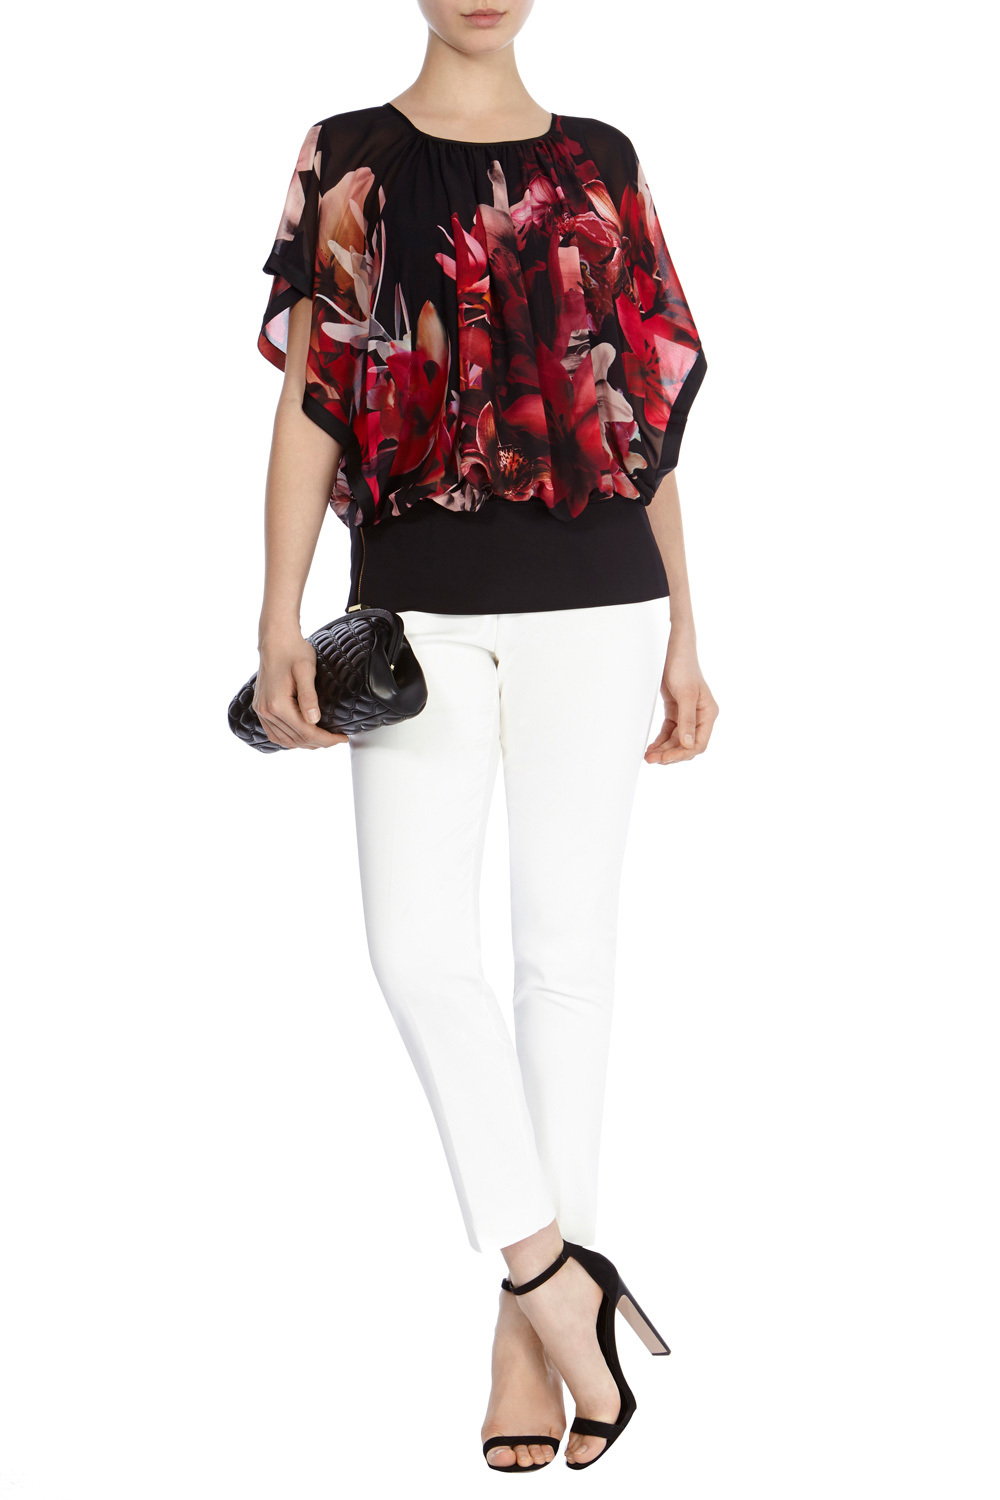 Elena Printed Calla Top - neckline: round neck; sleeve style: dolman/batwing; secondary colour: true red; predominant colour: black; occasions: evening; length: standard; style: top; fibres: polyester/polyamide - 100%; fit: body skimming; sleeve length: half sleeve; texture group: sheer fabrics/chiffon/organza etc.; pattern type: fabric; pattern: florals; multicoloured: multicoloured; season: s/s 2016; wardrobe: event